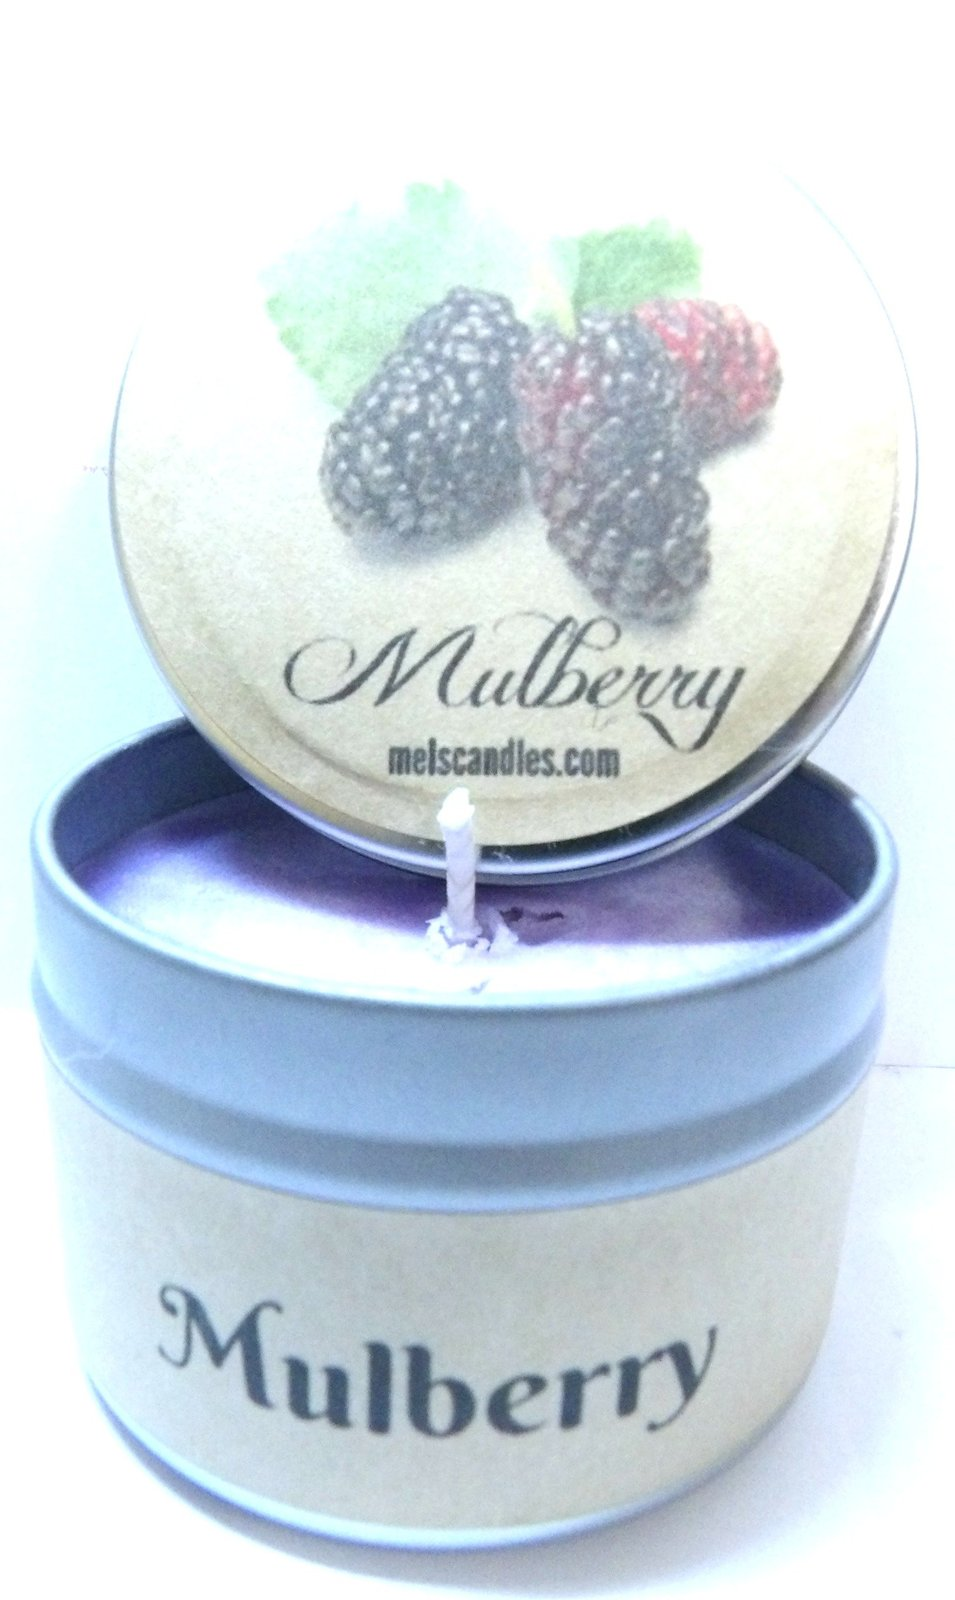 4oz Soy Candle Tin - Mulberry - Handmade with Essential Oil Easy to take any ...